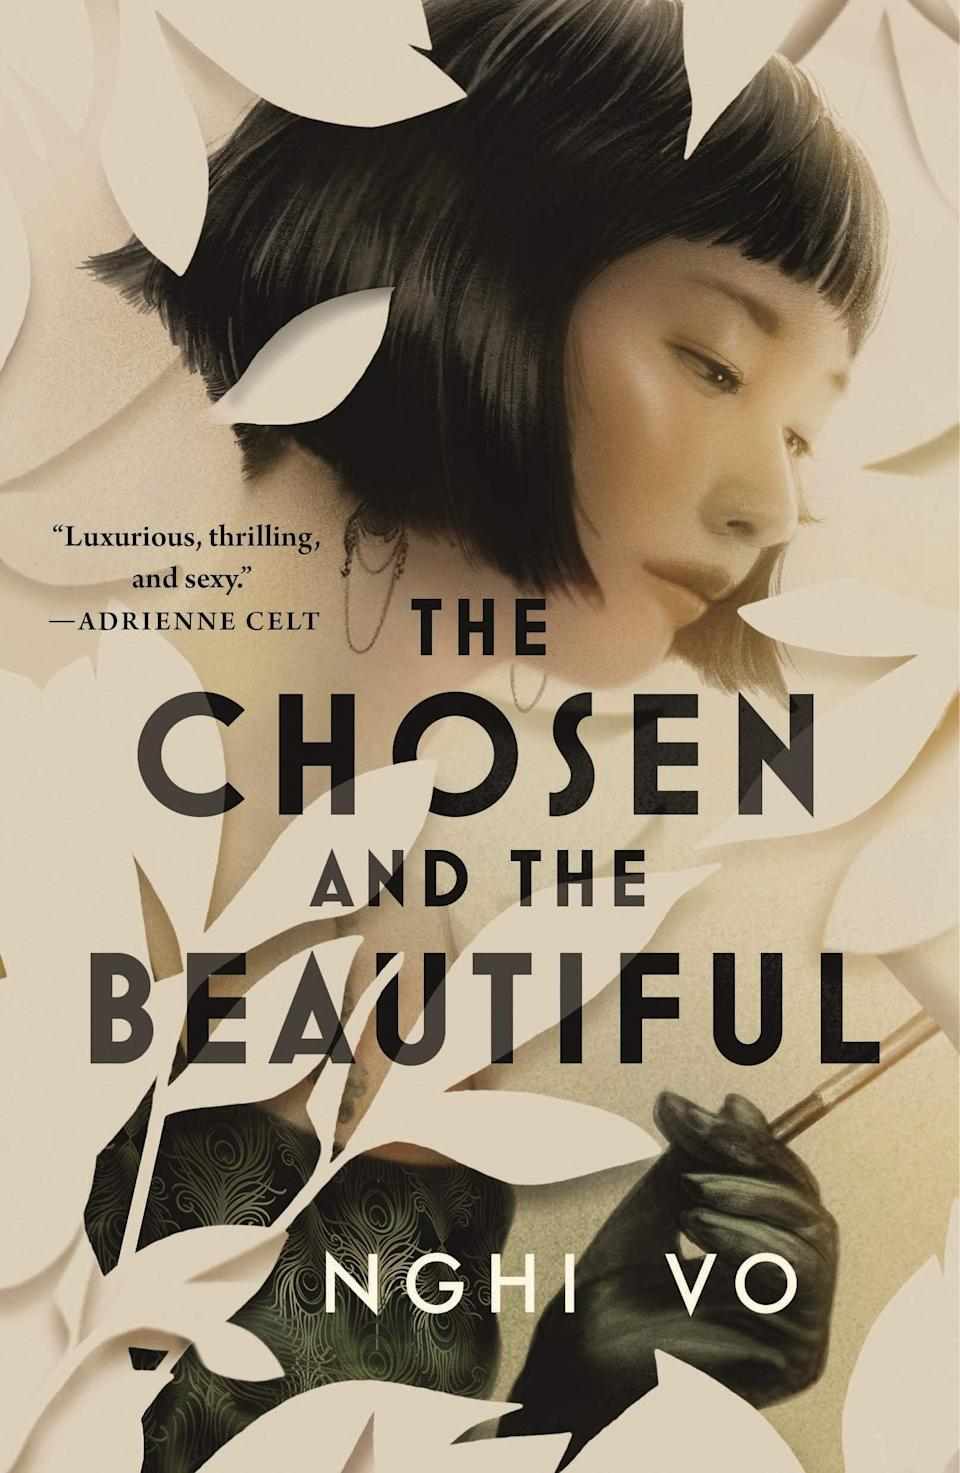 <p><strong>The Great Gatsby</strong> gets a long-overdue makeover in Nghi Vo's <span><strong>The Chosen and the Beautiful</strong></span>. Jordan Baker comes from a wealthy family and lives the life of a socialite during the Jazz Age, but she's also queer, adopted, and Asian, making her a curiosity to her friends. Even though the odds are stacked against her, Jordan is about to embark on a journey of self-discovery that's downright magical.</p> <p><em>Out June 1</em></p>